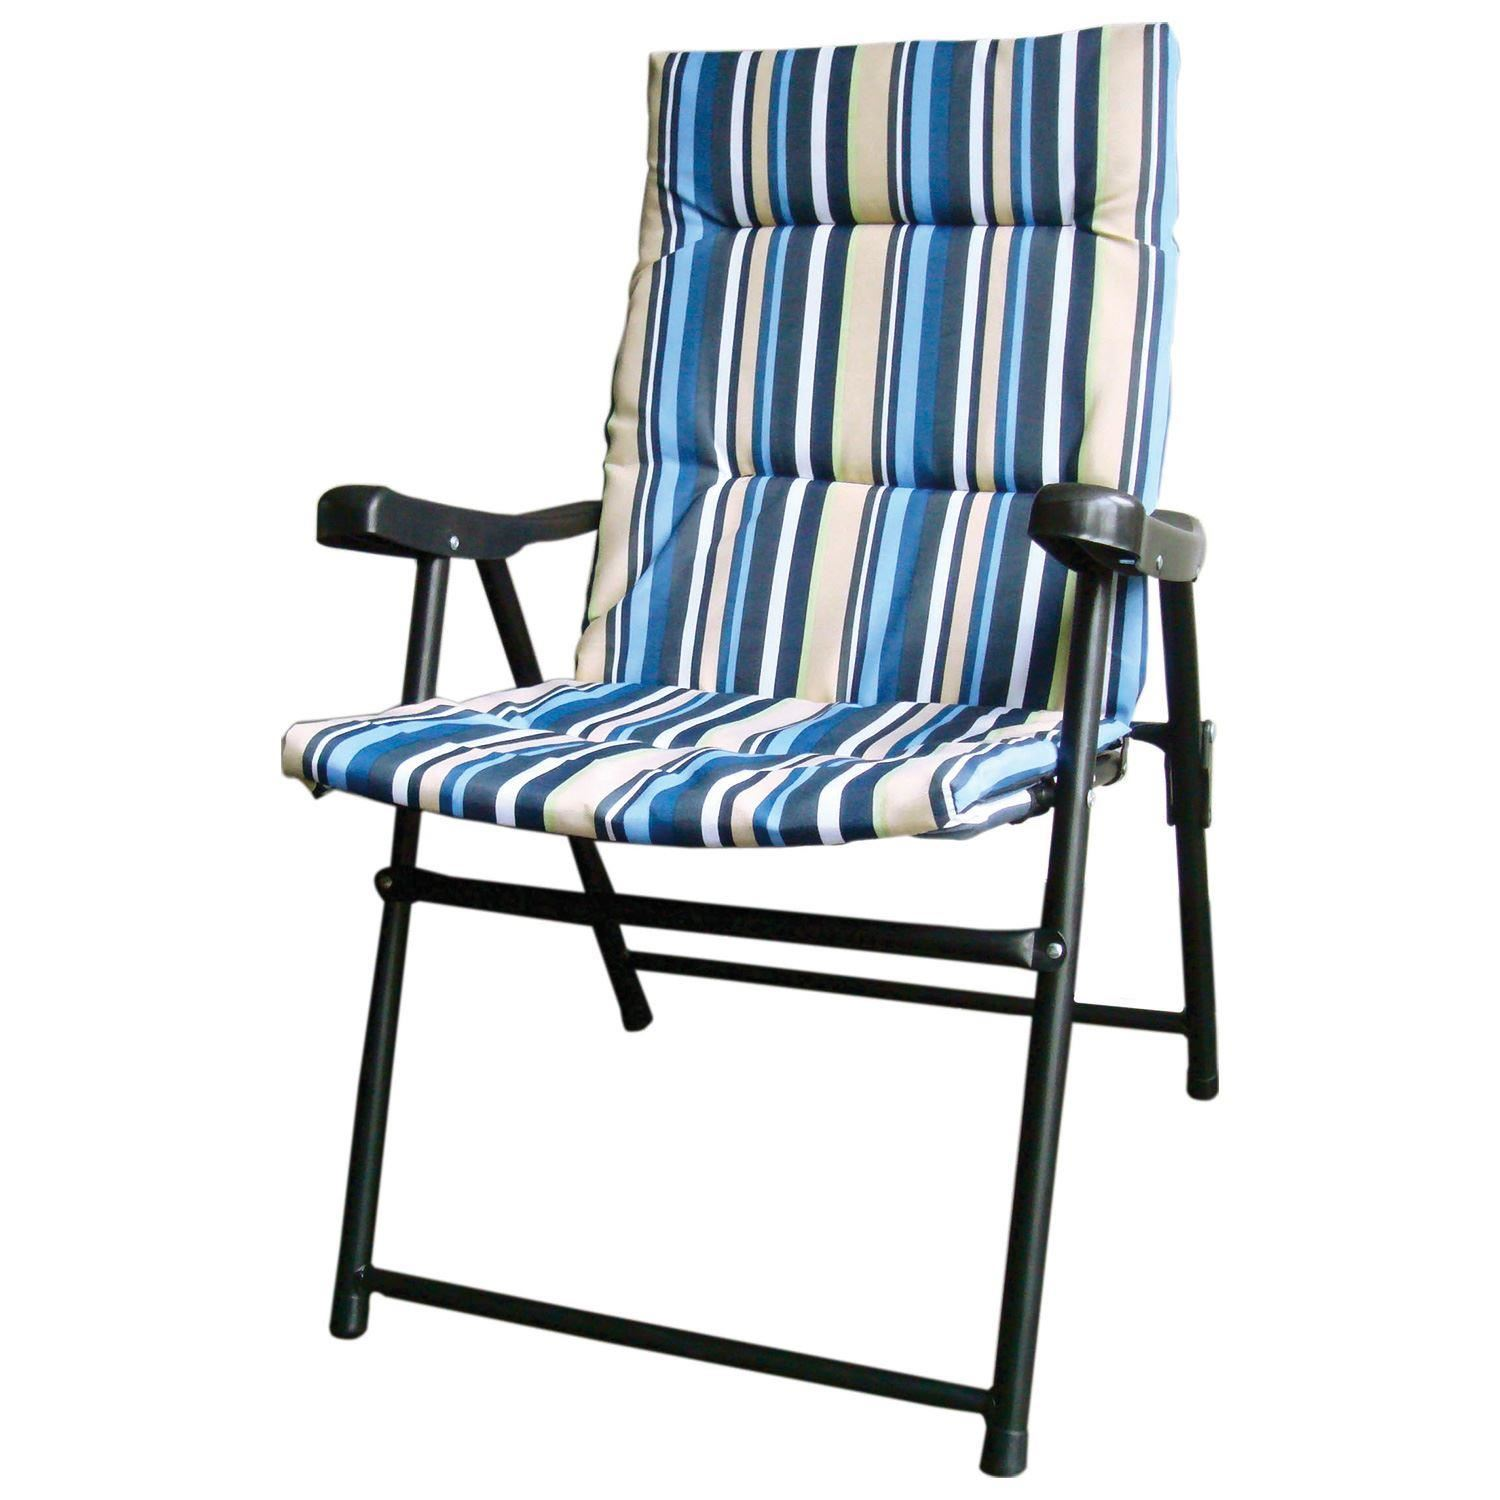 two seater folding lawn chair tree stump 2 x striped padded outdoor garden camping picnic